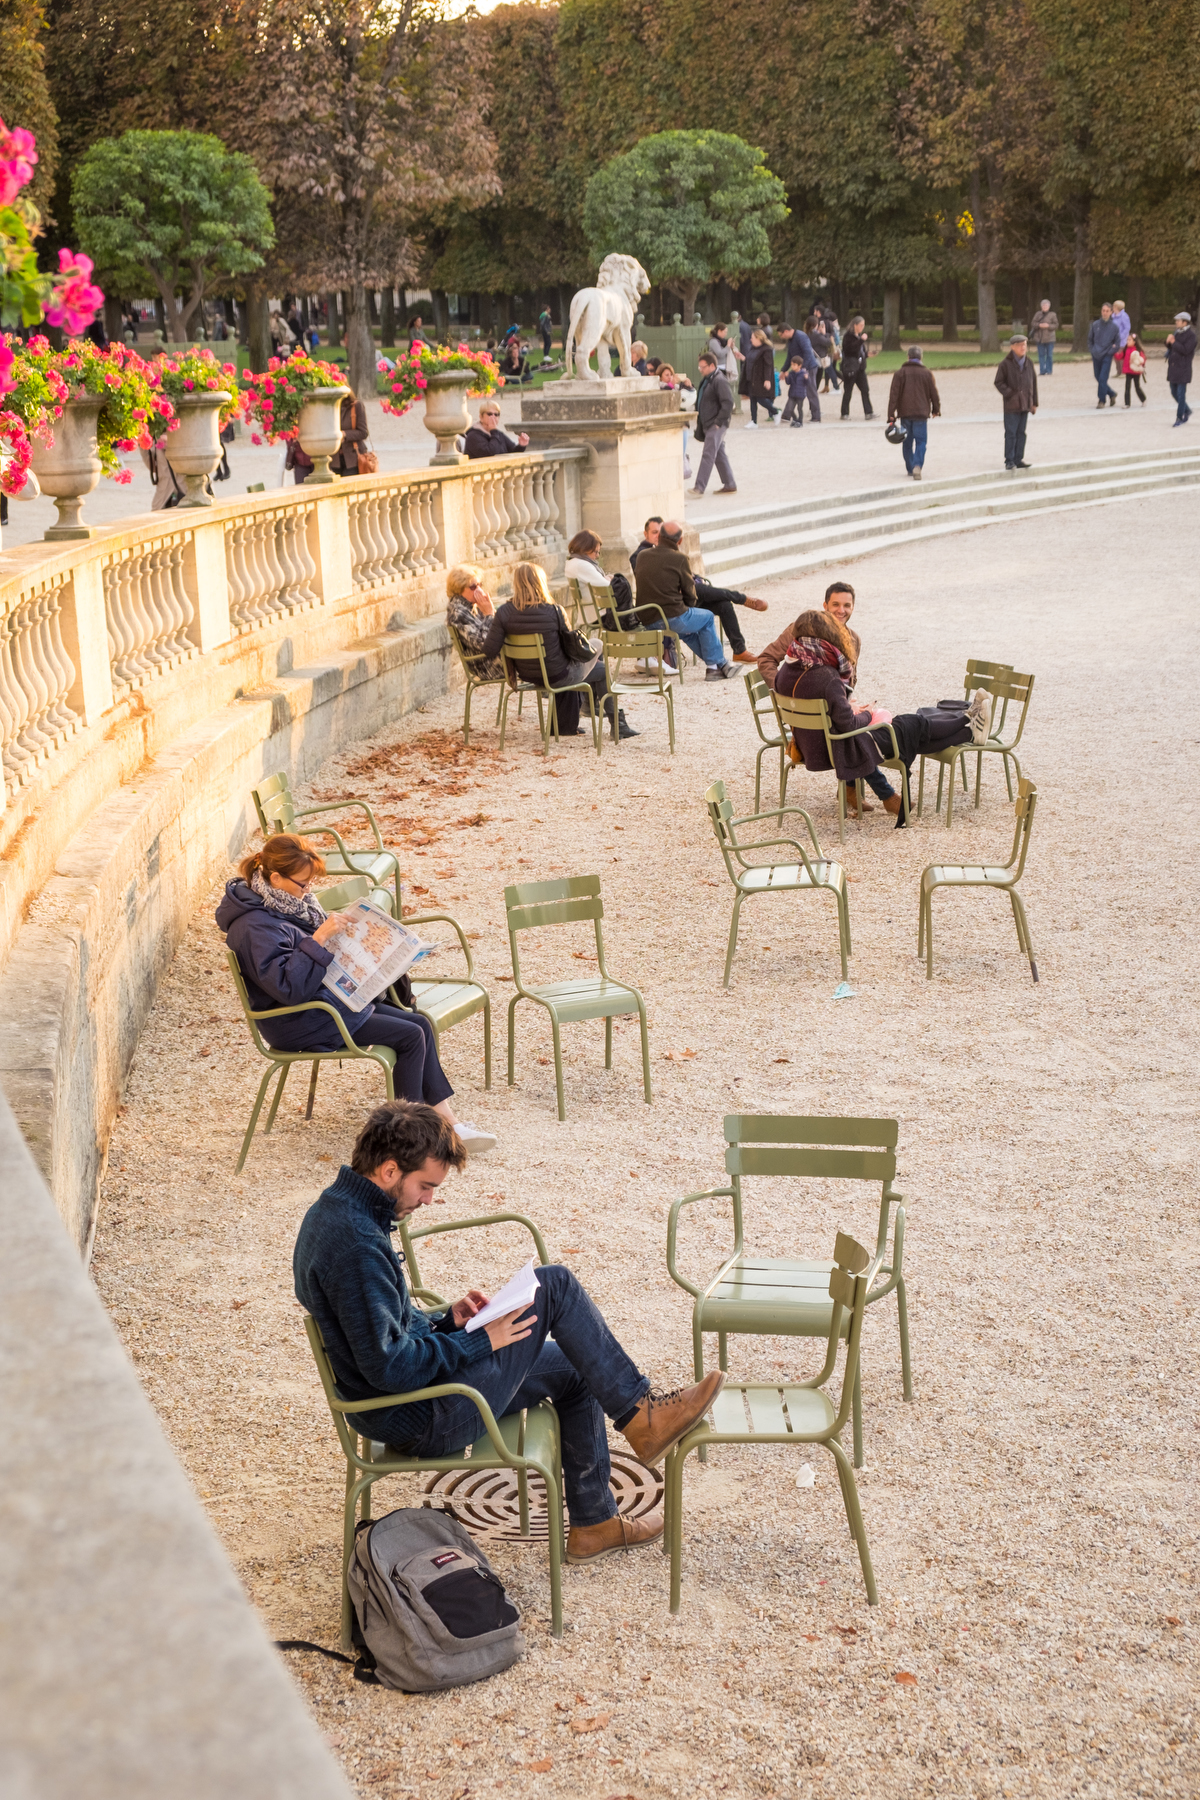 Not to many people playing with their cell phones in this country! Jardin du Luxembourg